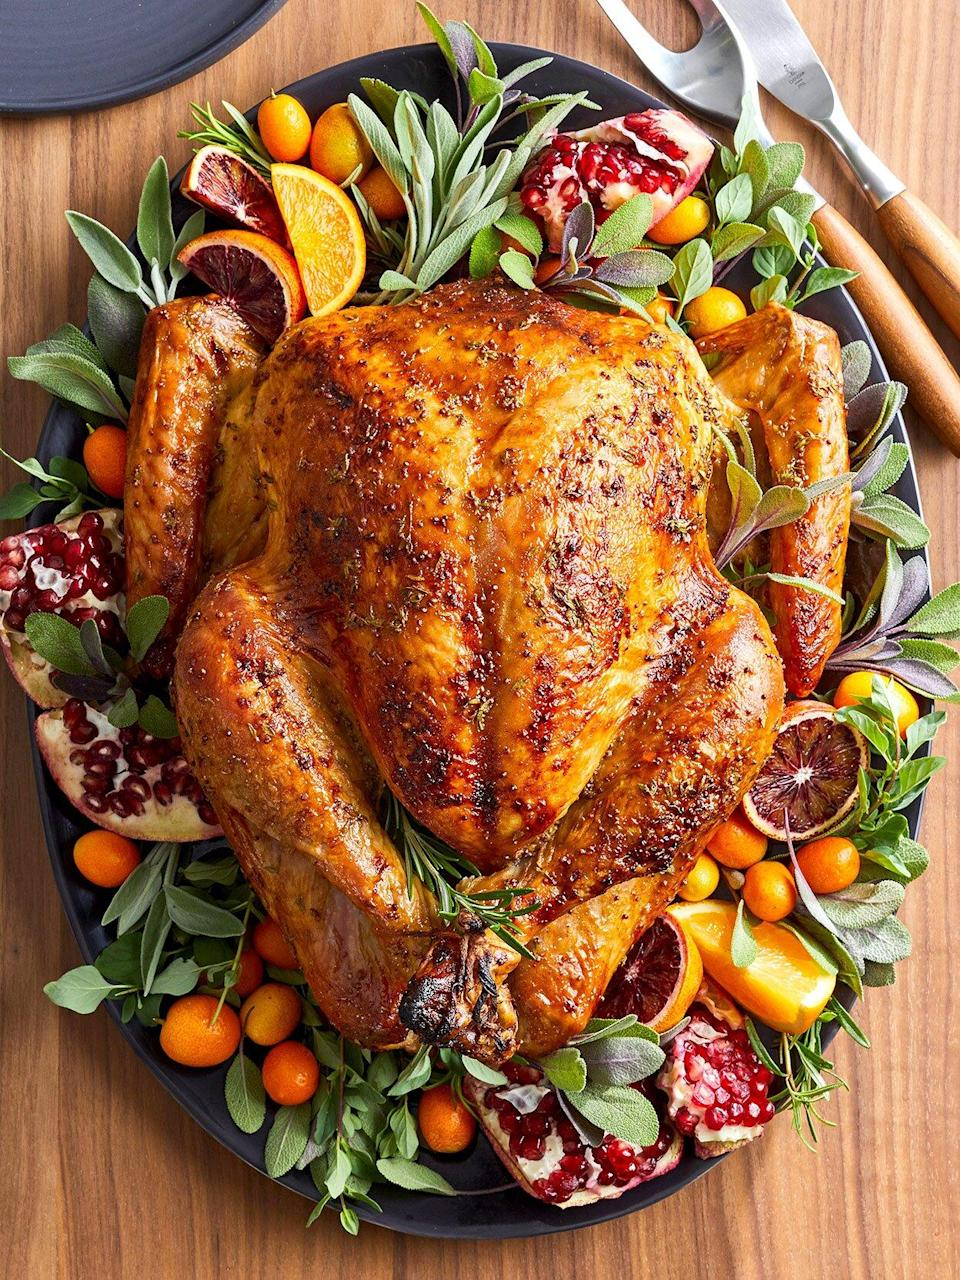 This roast turkey recipe, complete with glaze options, is a compilation of our Test Kitchen's best advice from 90 years of testing and tasting Thanksgiving turkeys.